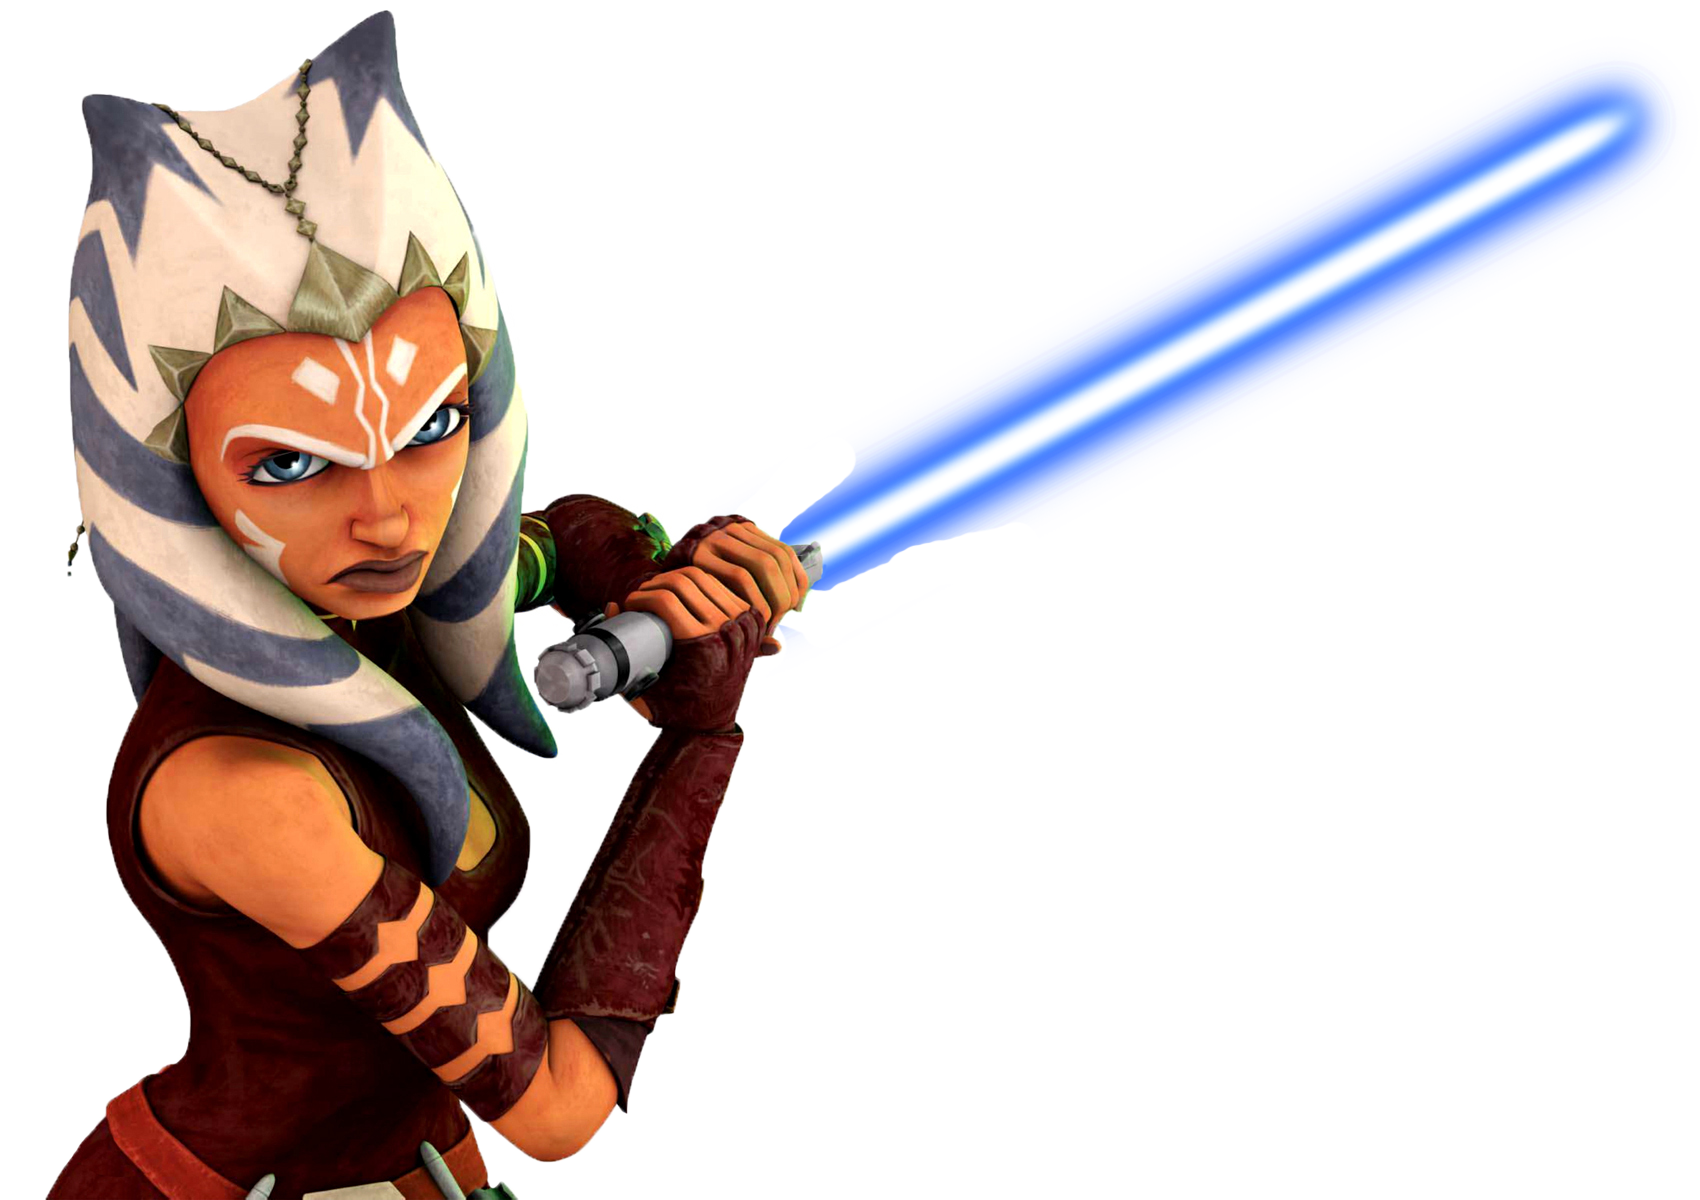 Star wars clipart lightsaber vector library stock Ahsoka Blue Lightsaber by SuperHeroTimeFan on DeviantArt vector library stock